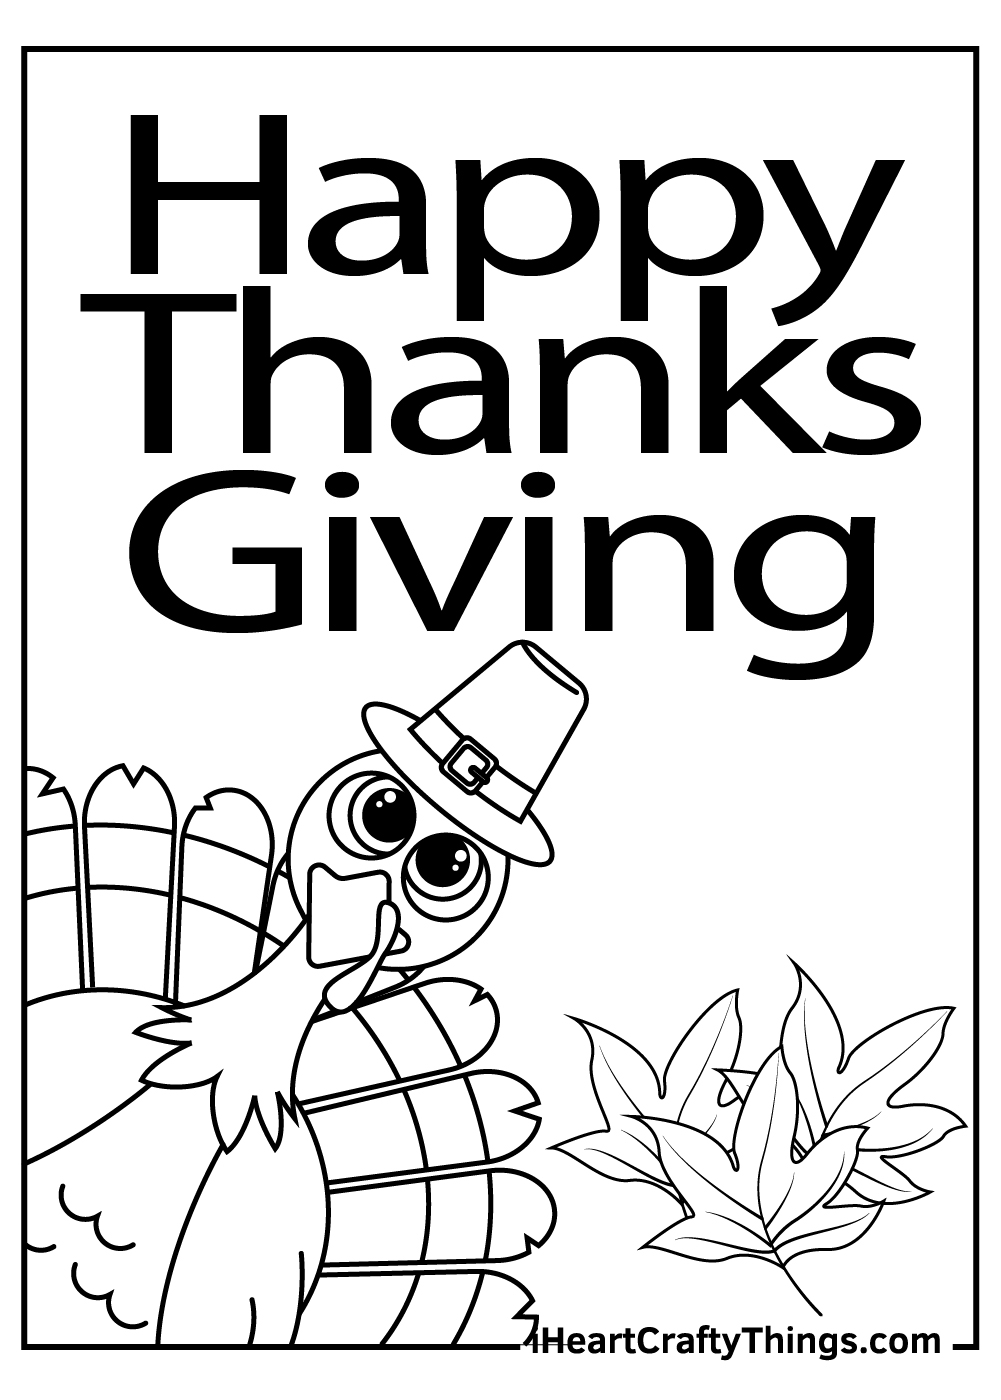 happy  thanks giving coloring printable pdf